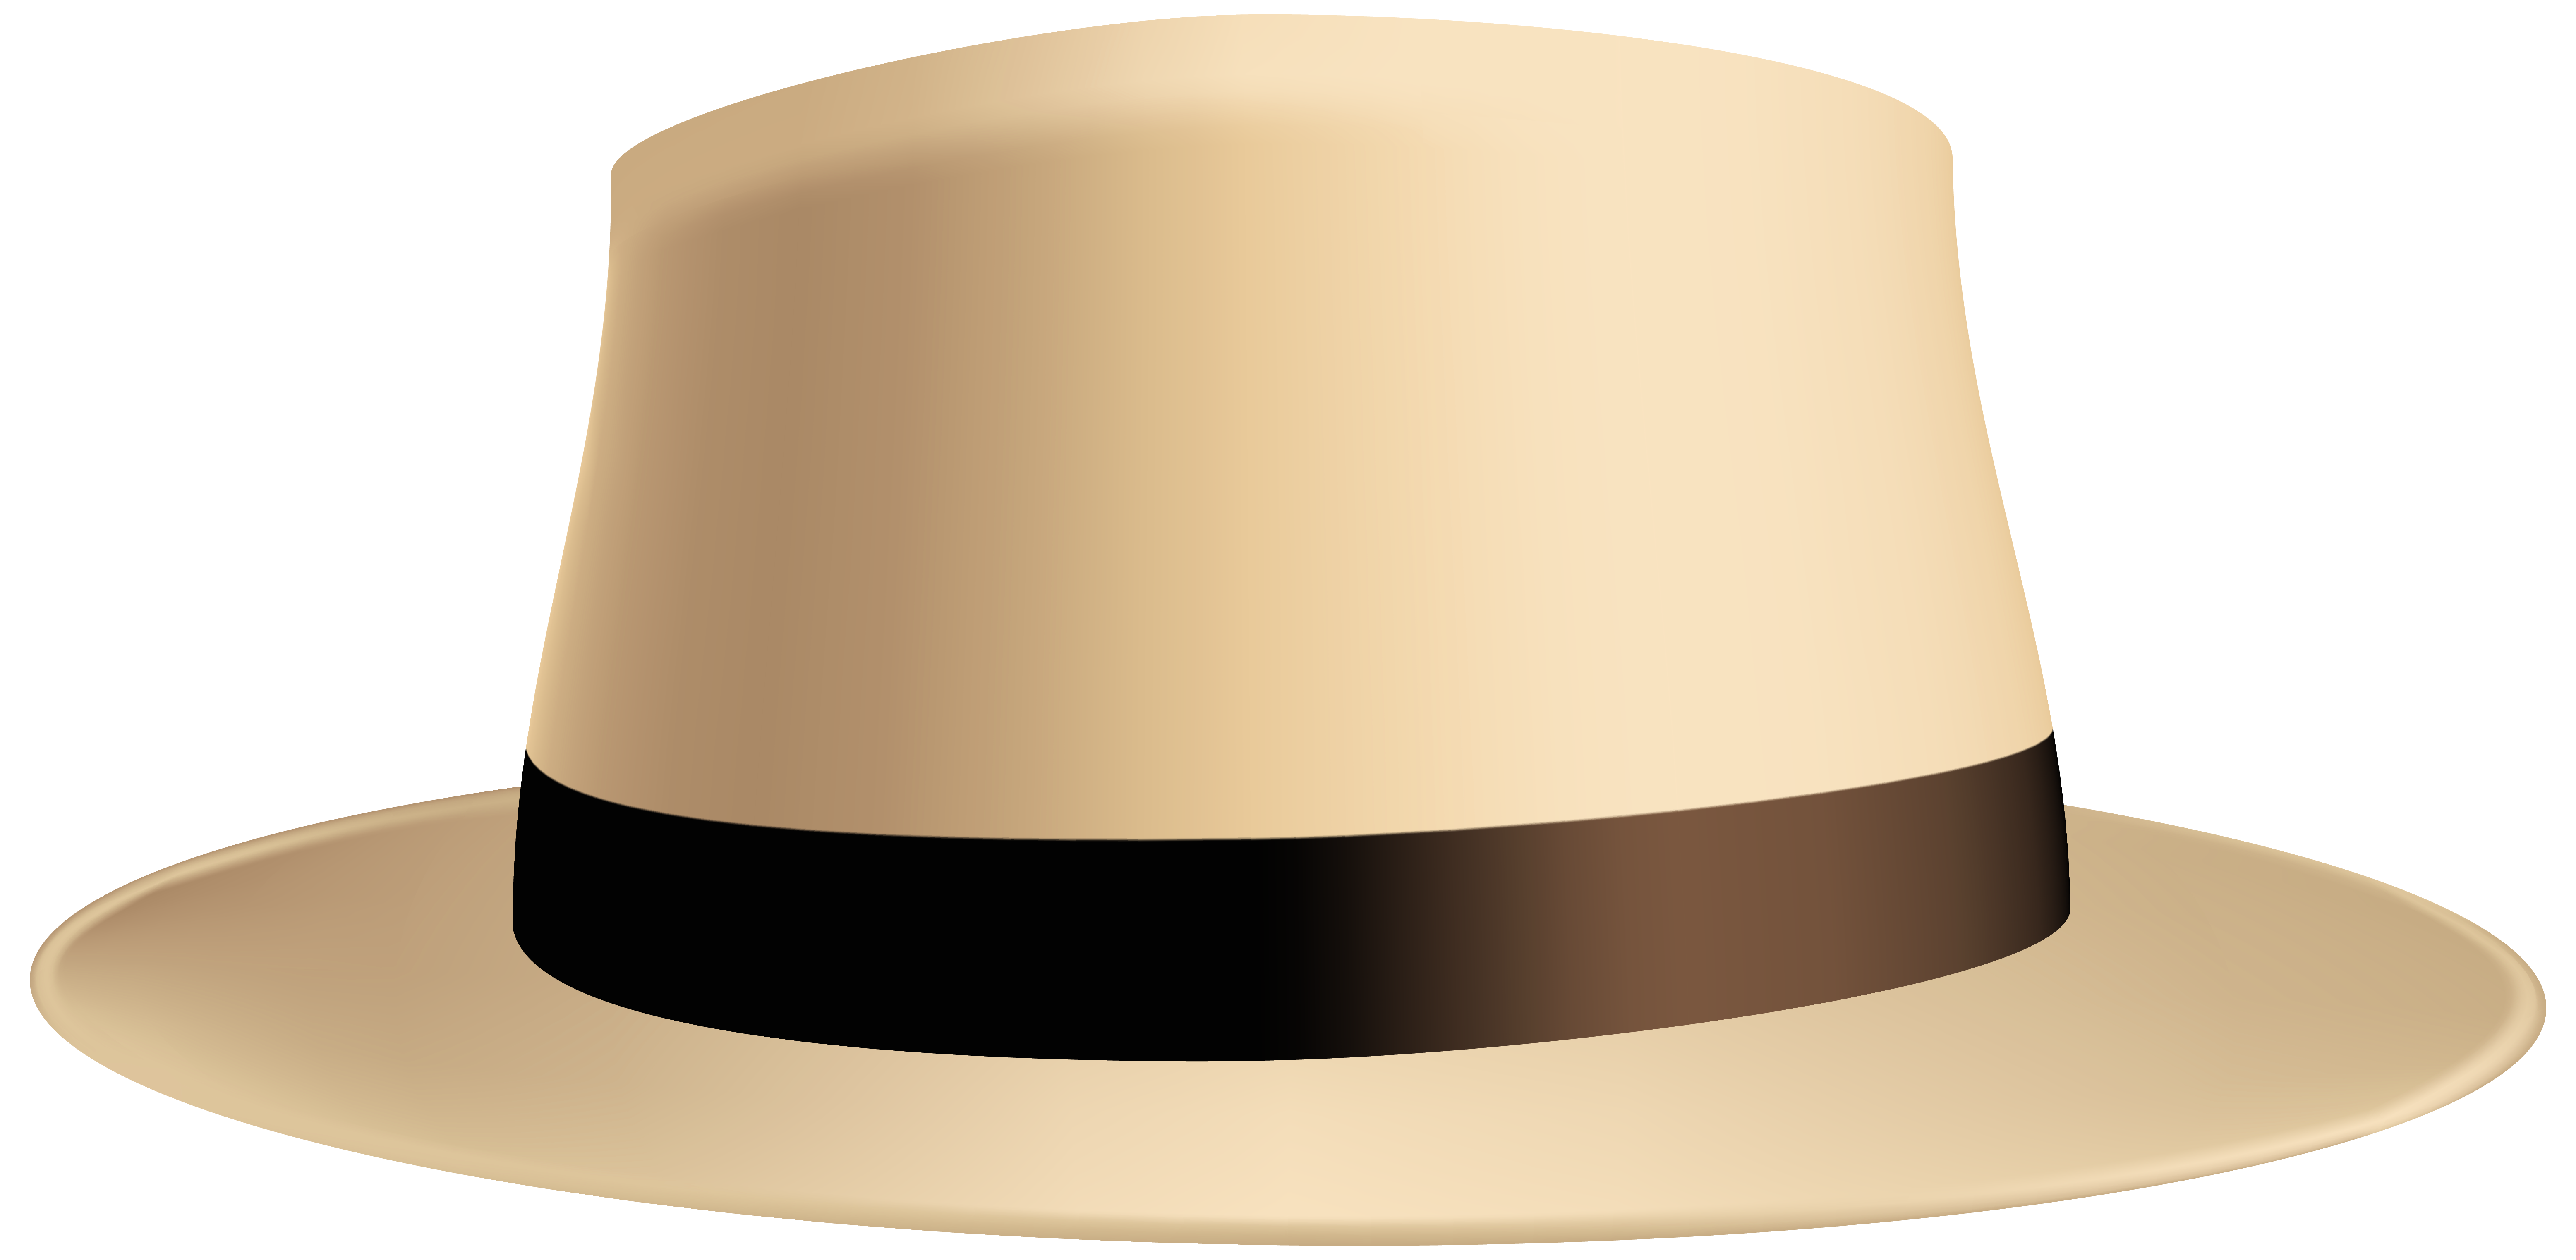 Sun hat clipart png image library library Sun Hat Clipart | Free download best Sun Hat Clipart on ... image library library